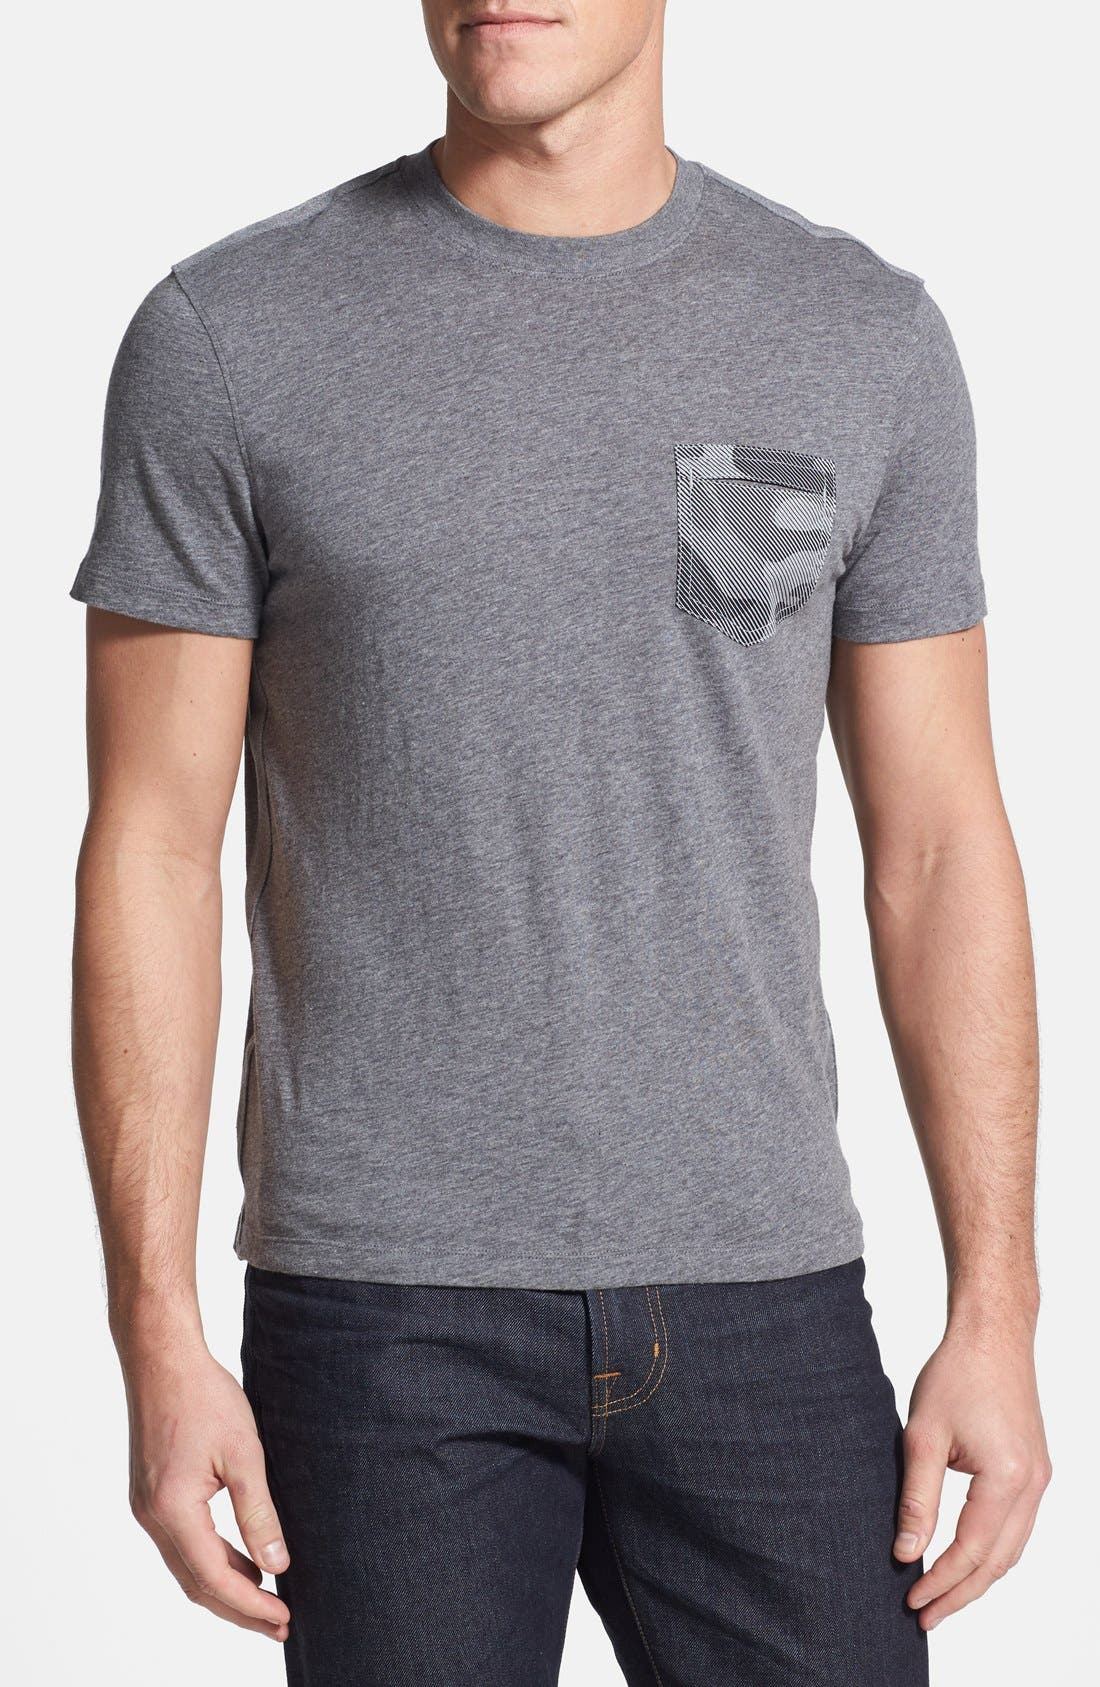 Main Image - Michael Kors Camo Pocket Slub T-Shirt